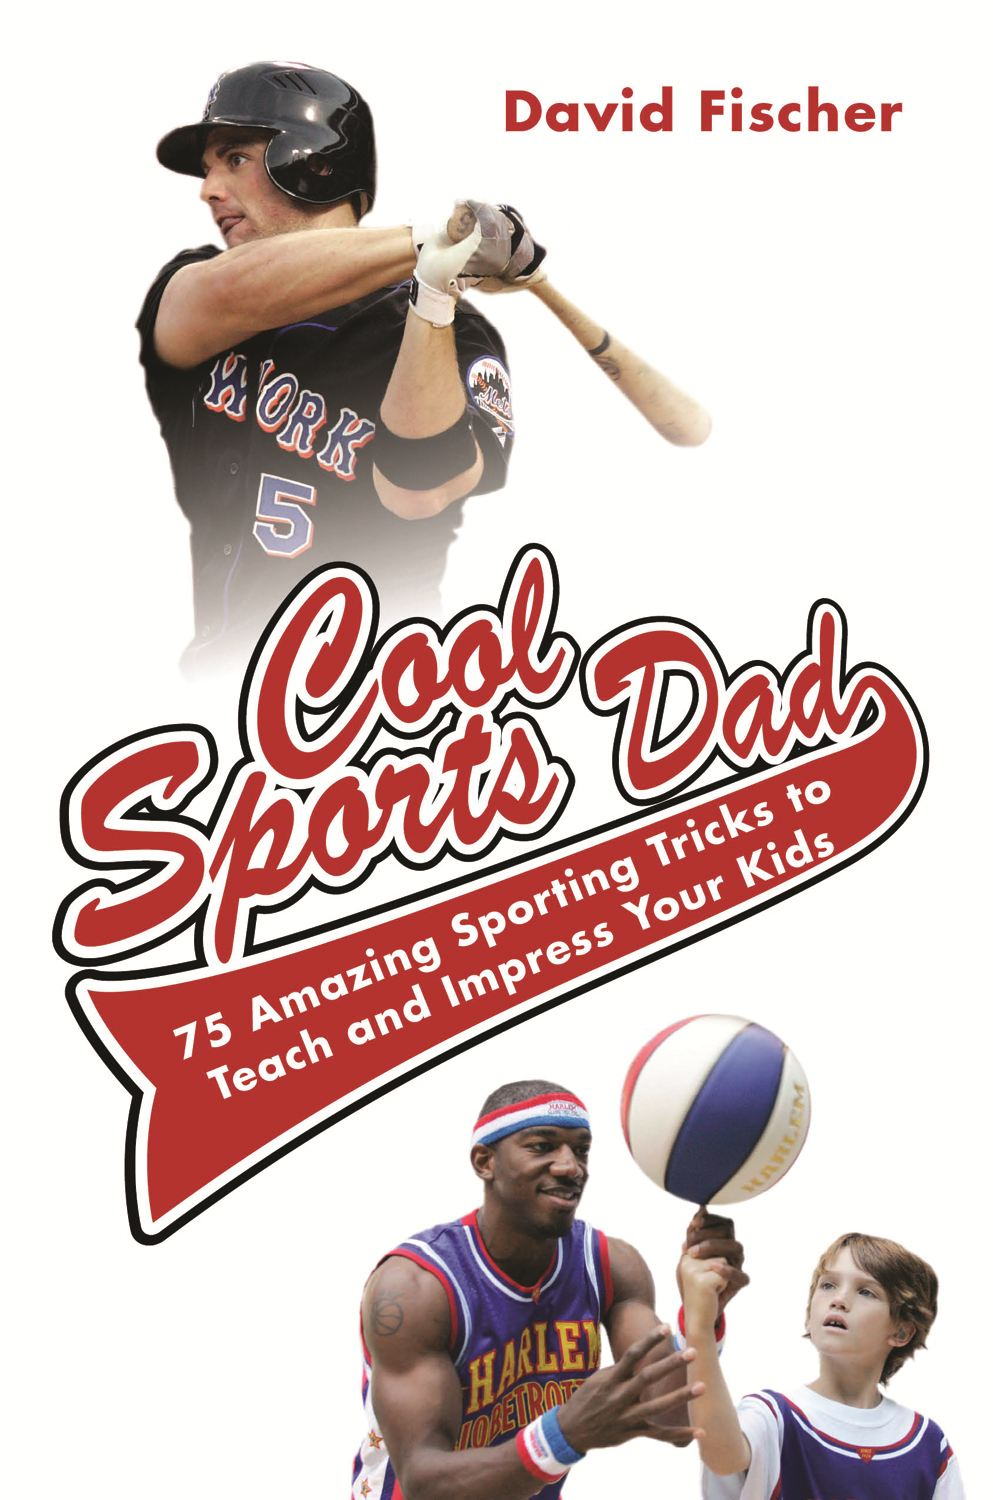 David Fischer - Cool Sports Dad: 75 Amazing Sporting Tricks to Teach and Impress Your Kids